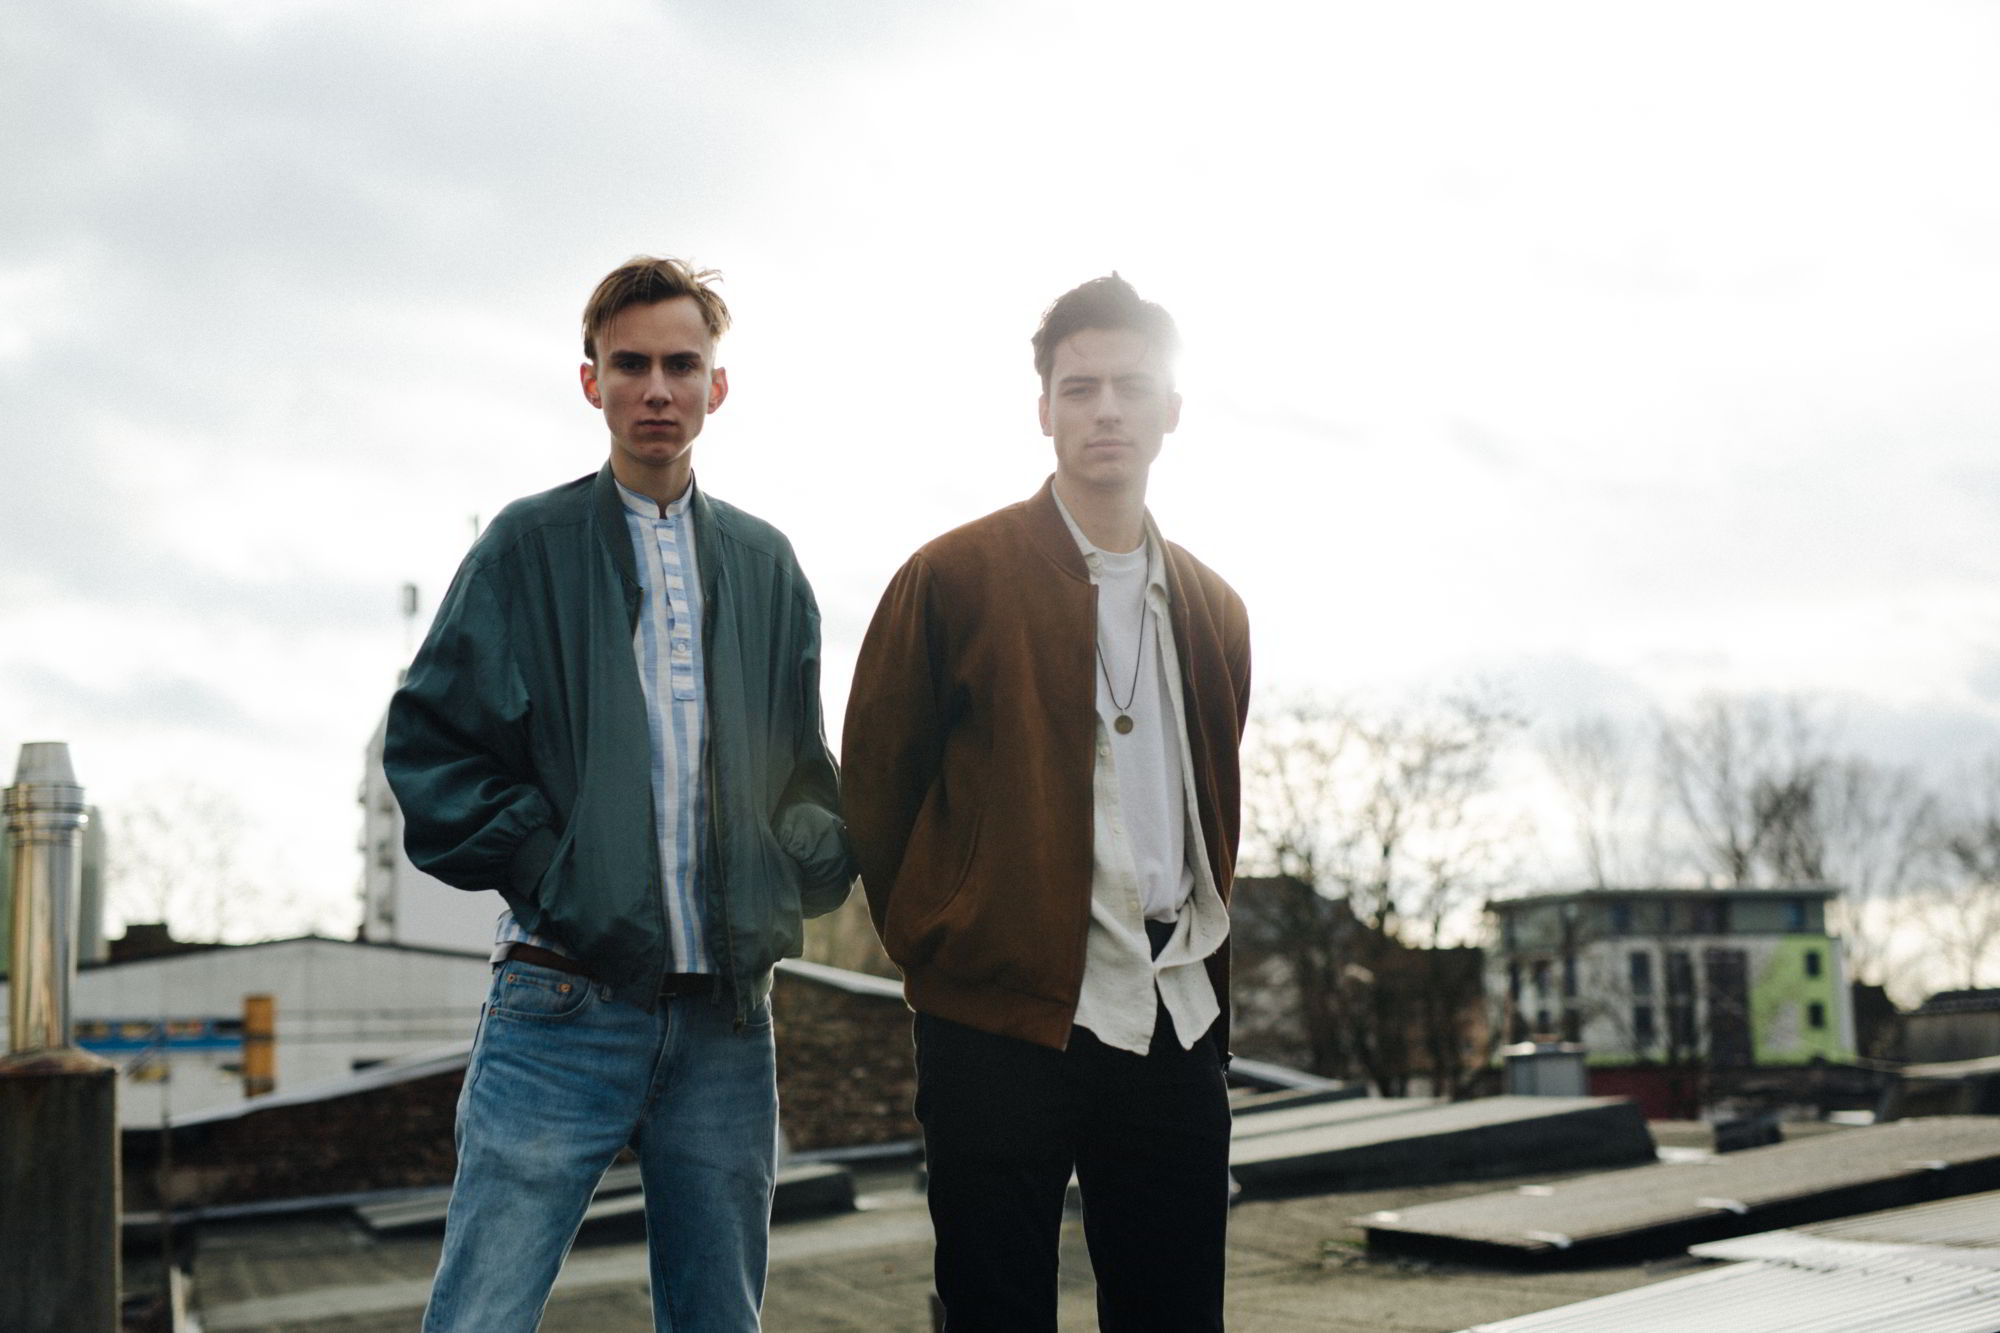 Maschinerie A carpenter and a barista, old schoolmates – the duo Maschinerie from Cologne offers a fresh take on electronic pop music – an eclectic style with a mix of catchy melodies and lyrics and an undertone of melancholy.